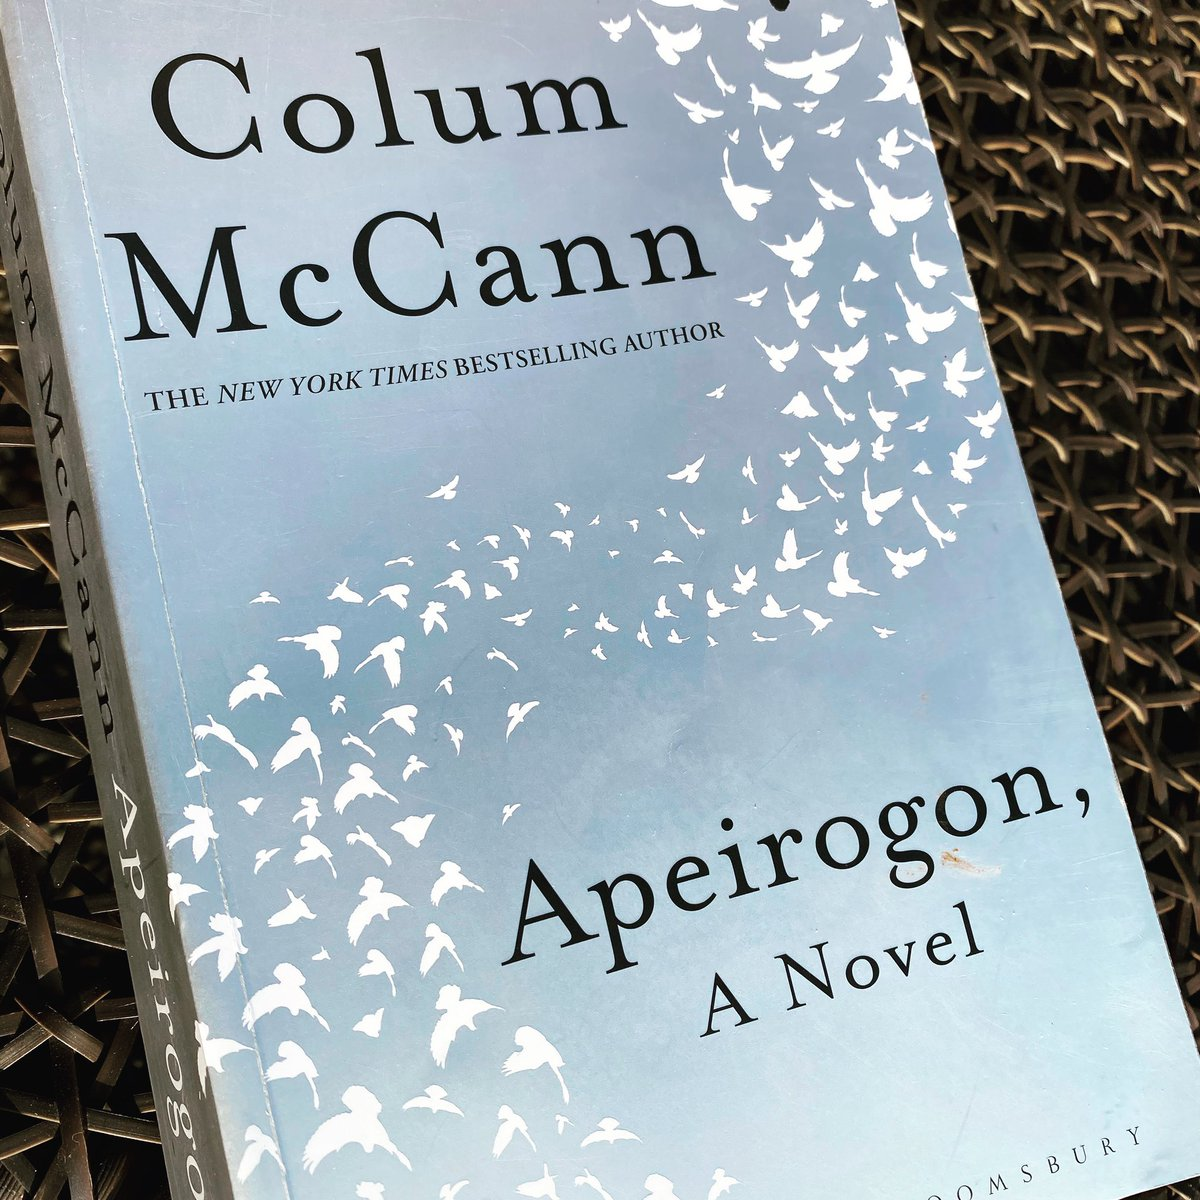 What a marvel of a book! Wise, complex and timely. A magnificent achievement! #ColmMcCann